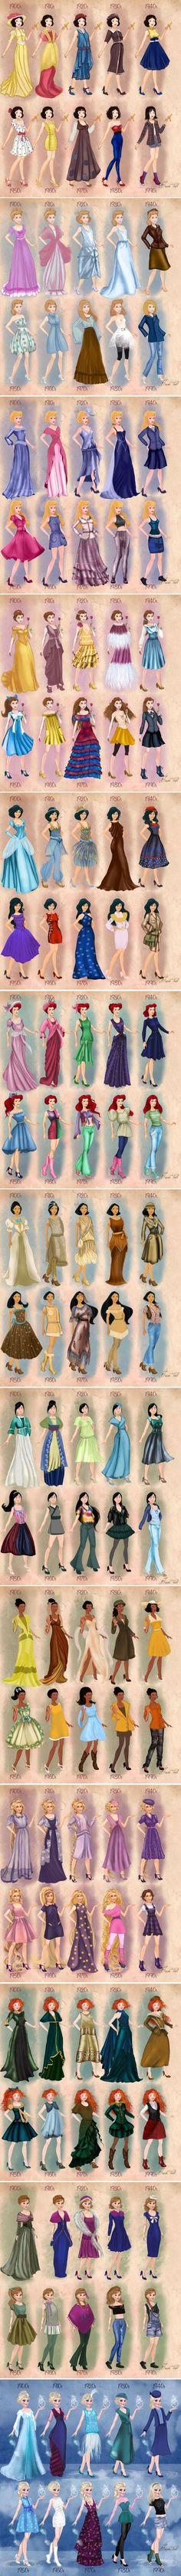 Disney Fashion Throughout The Years